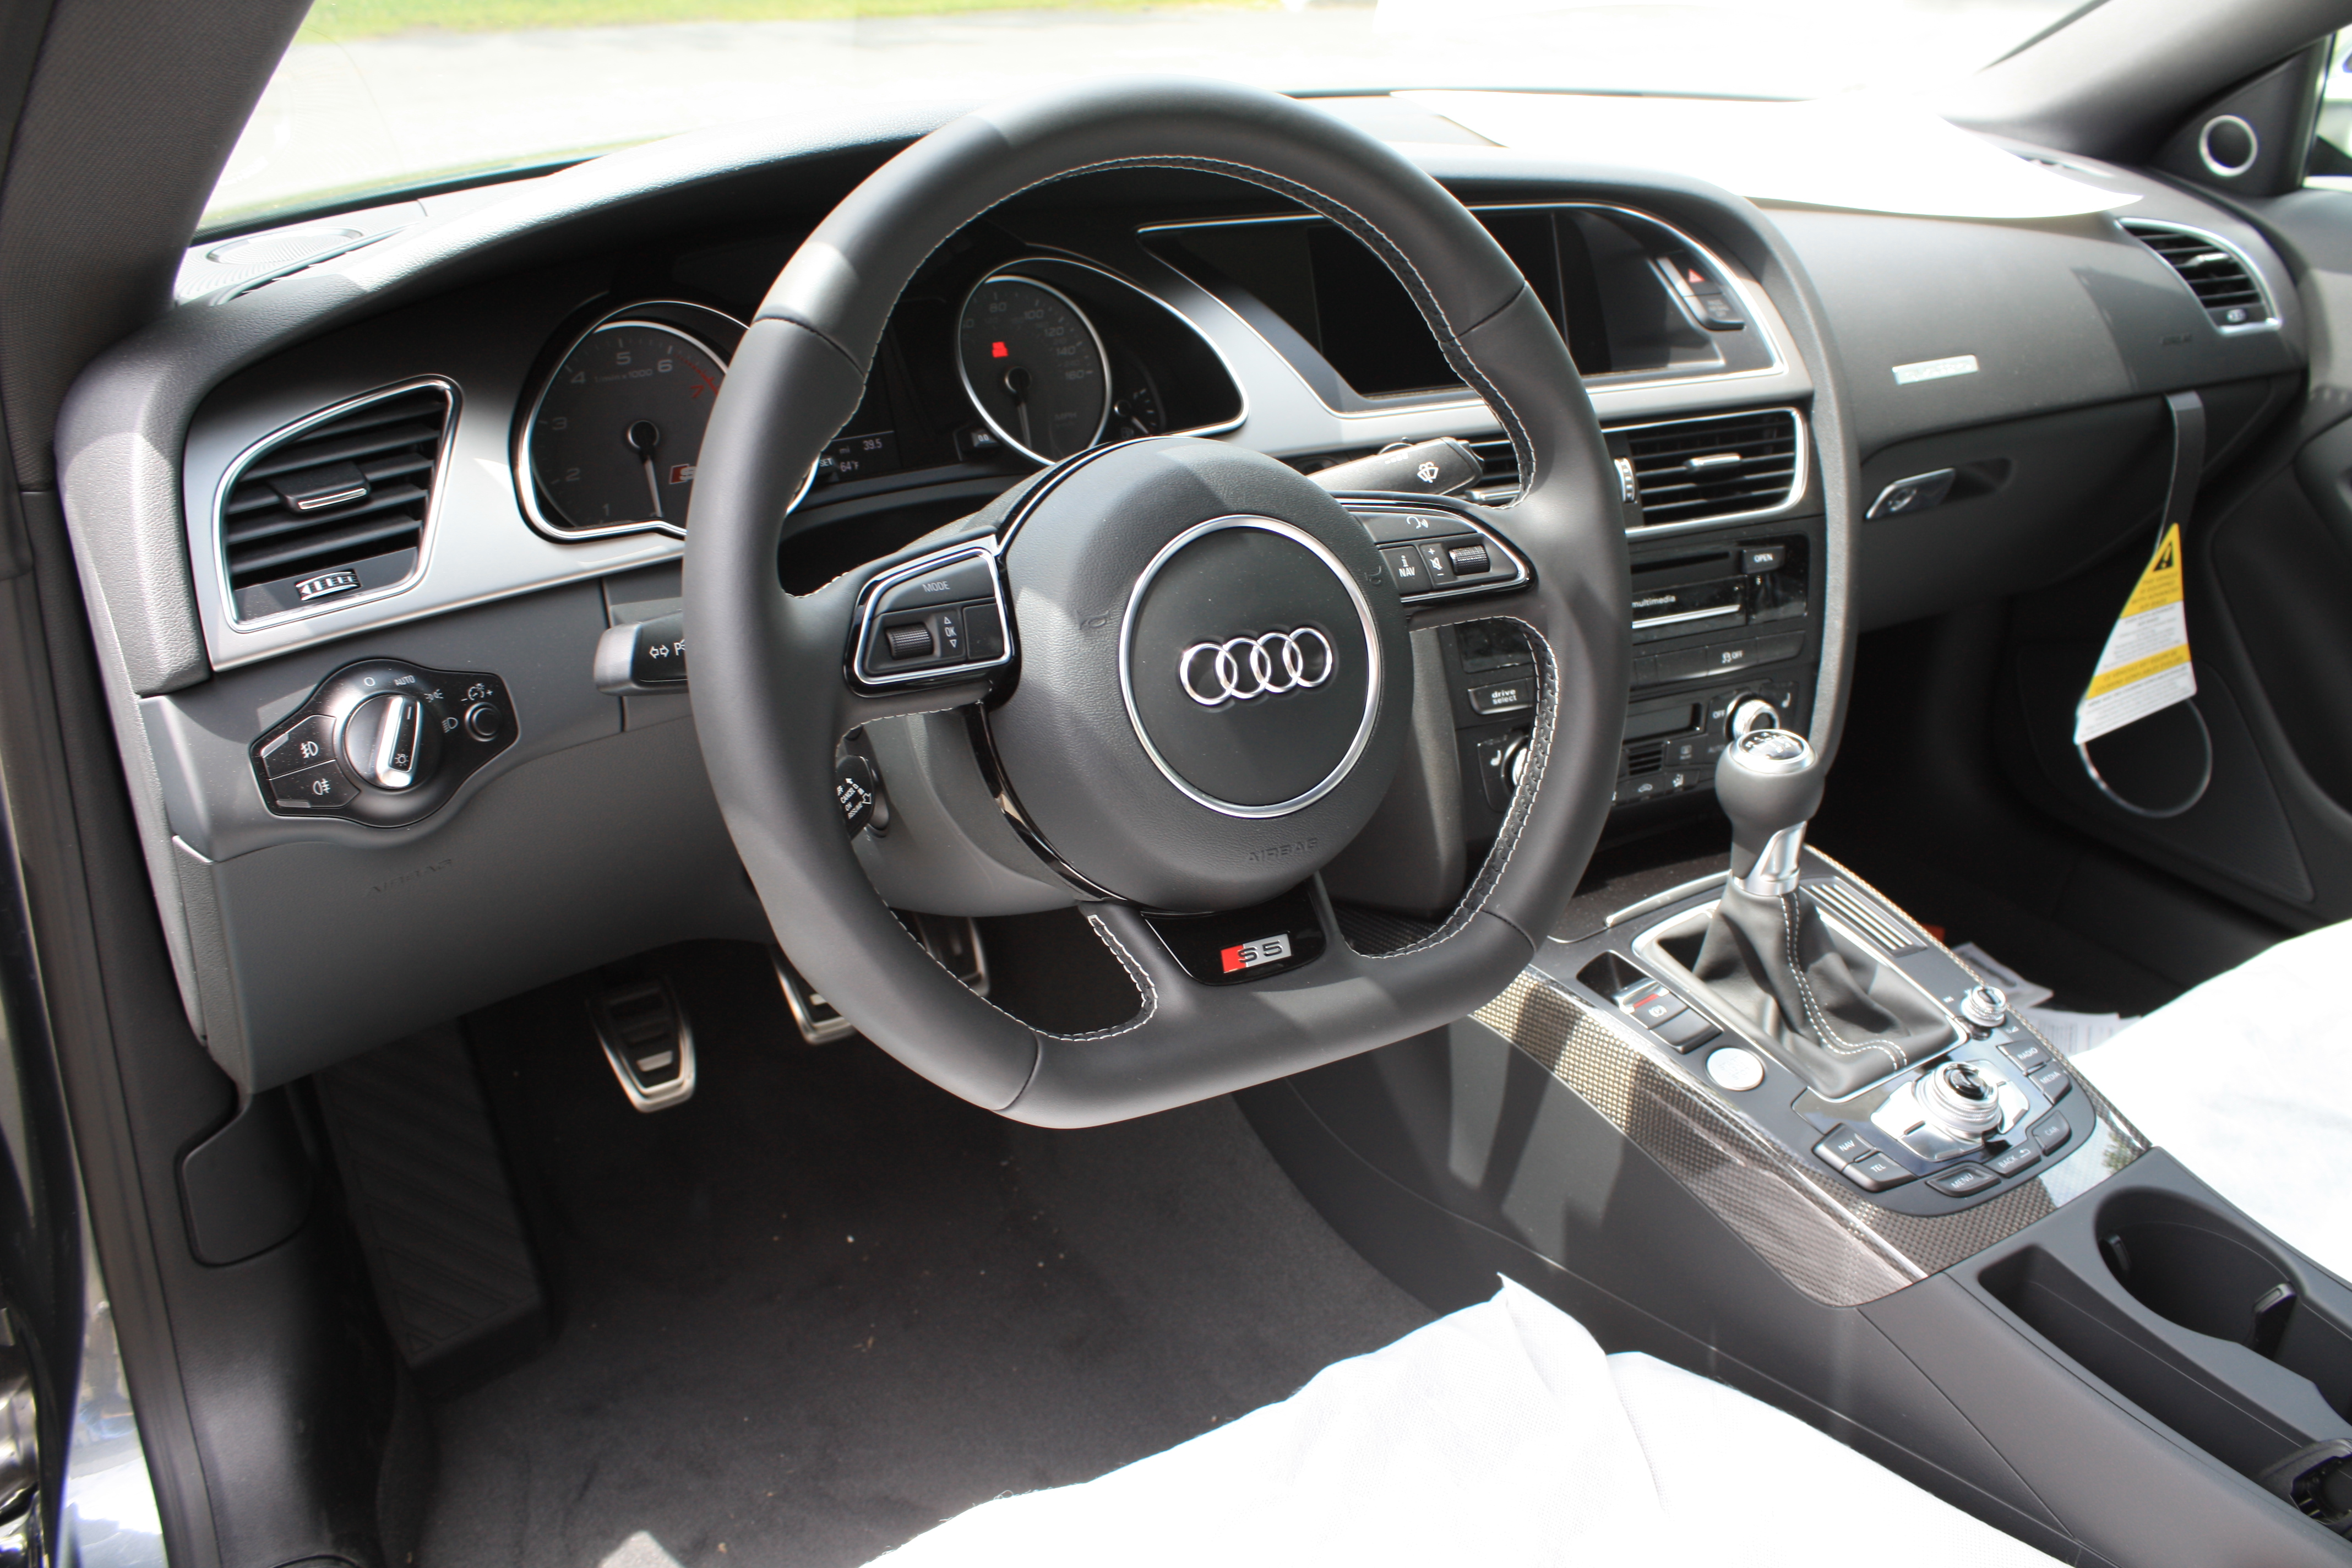 i outstanding for sale cars audi liftback exterior